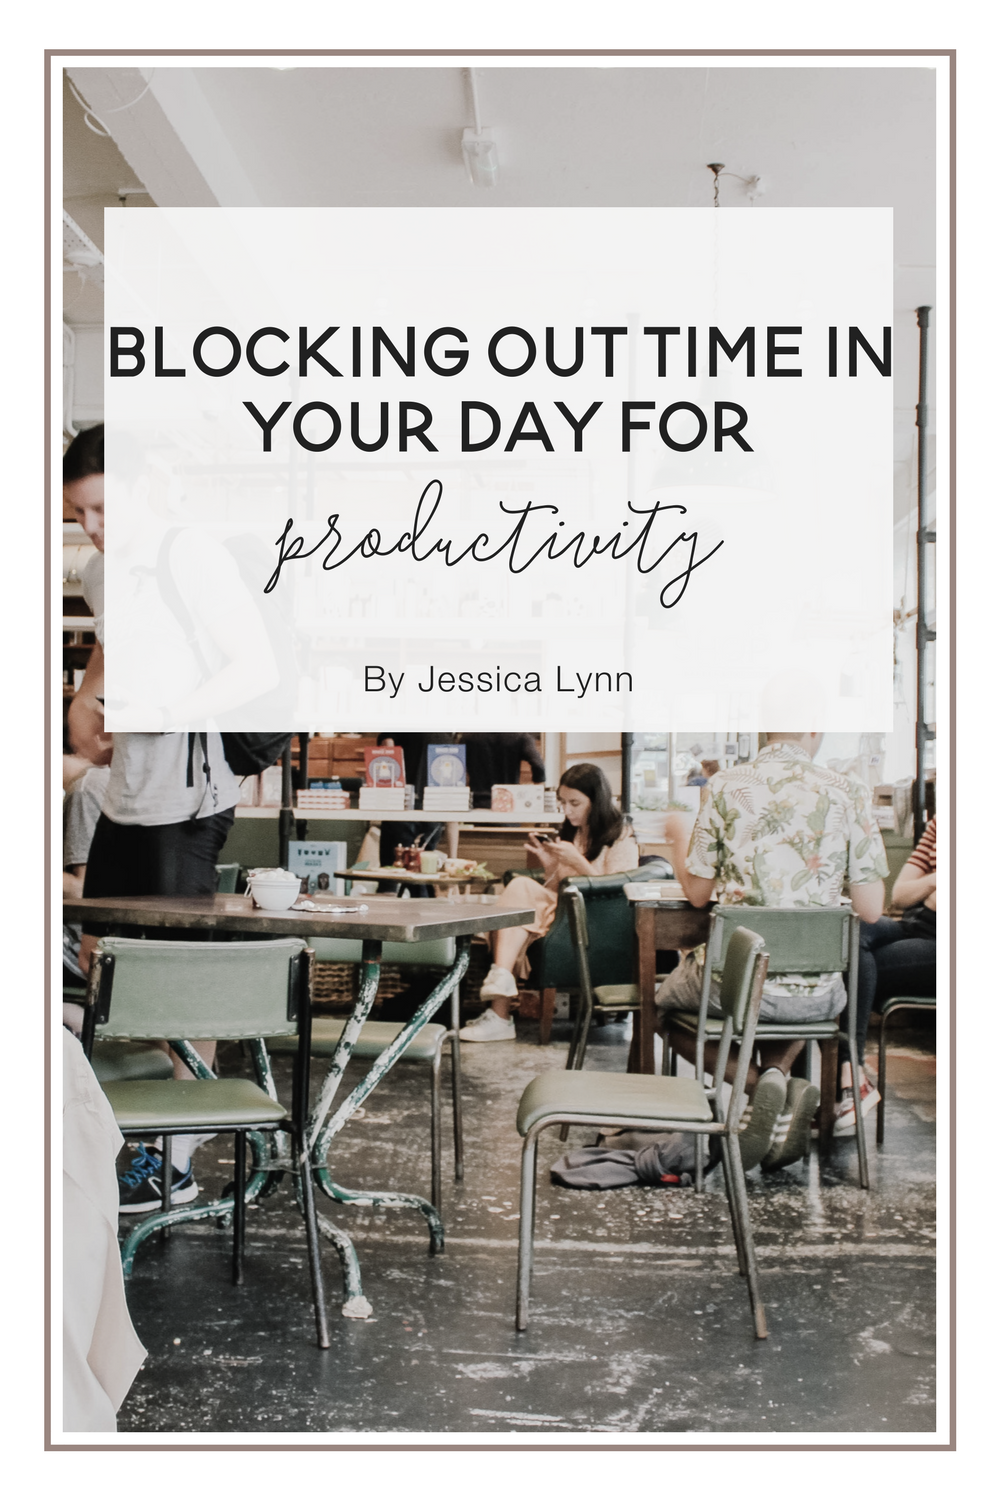 6 Ways To Turn Your House Into A Productive Home Environment: Blocking Out Time In Your Day For Productivity